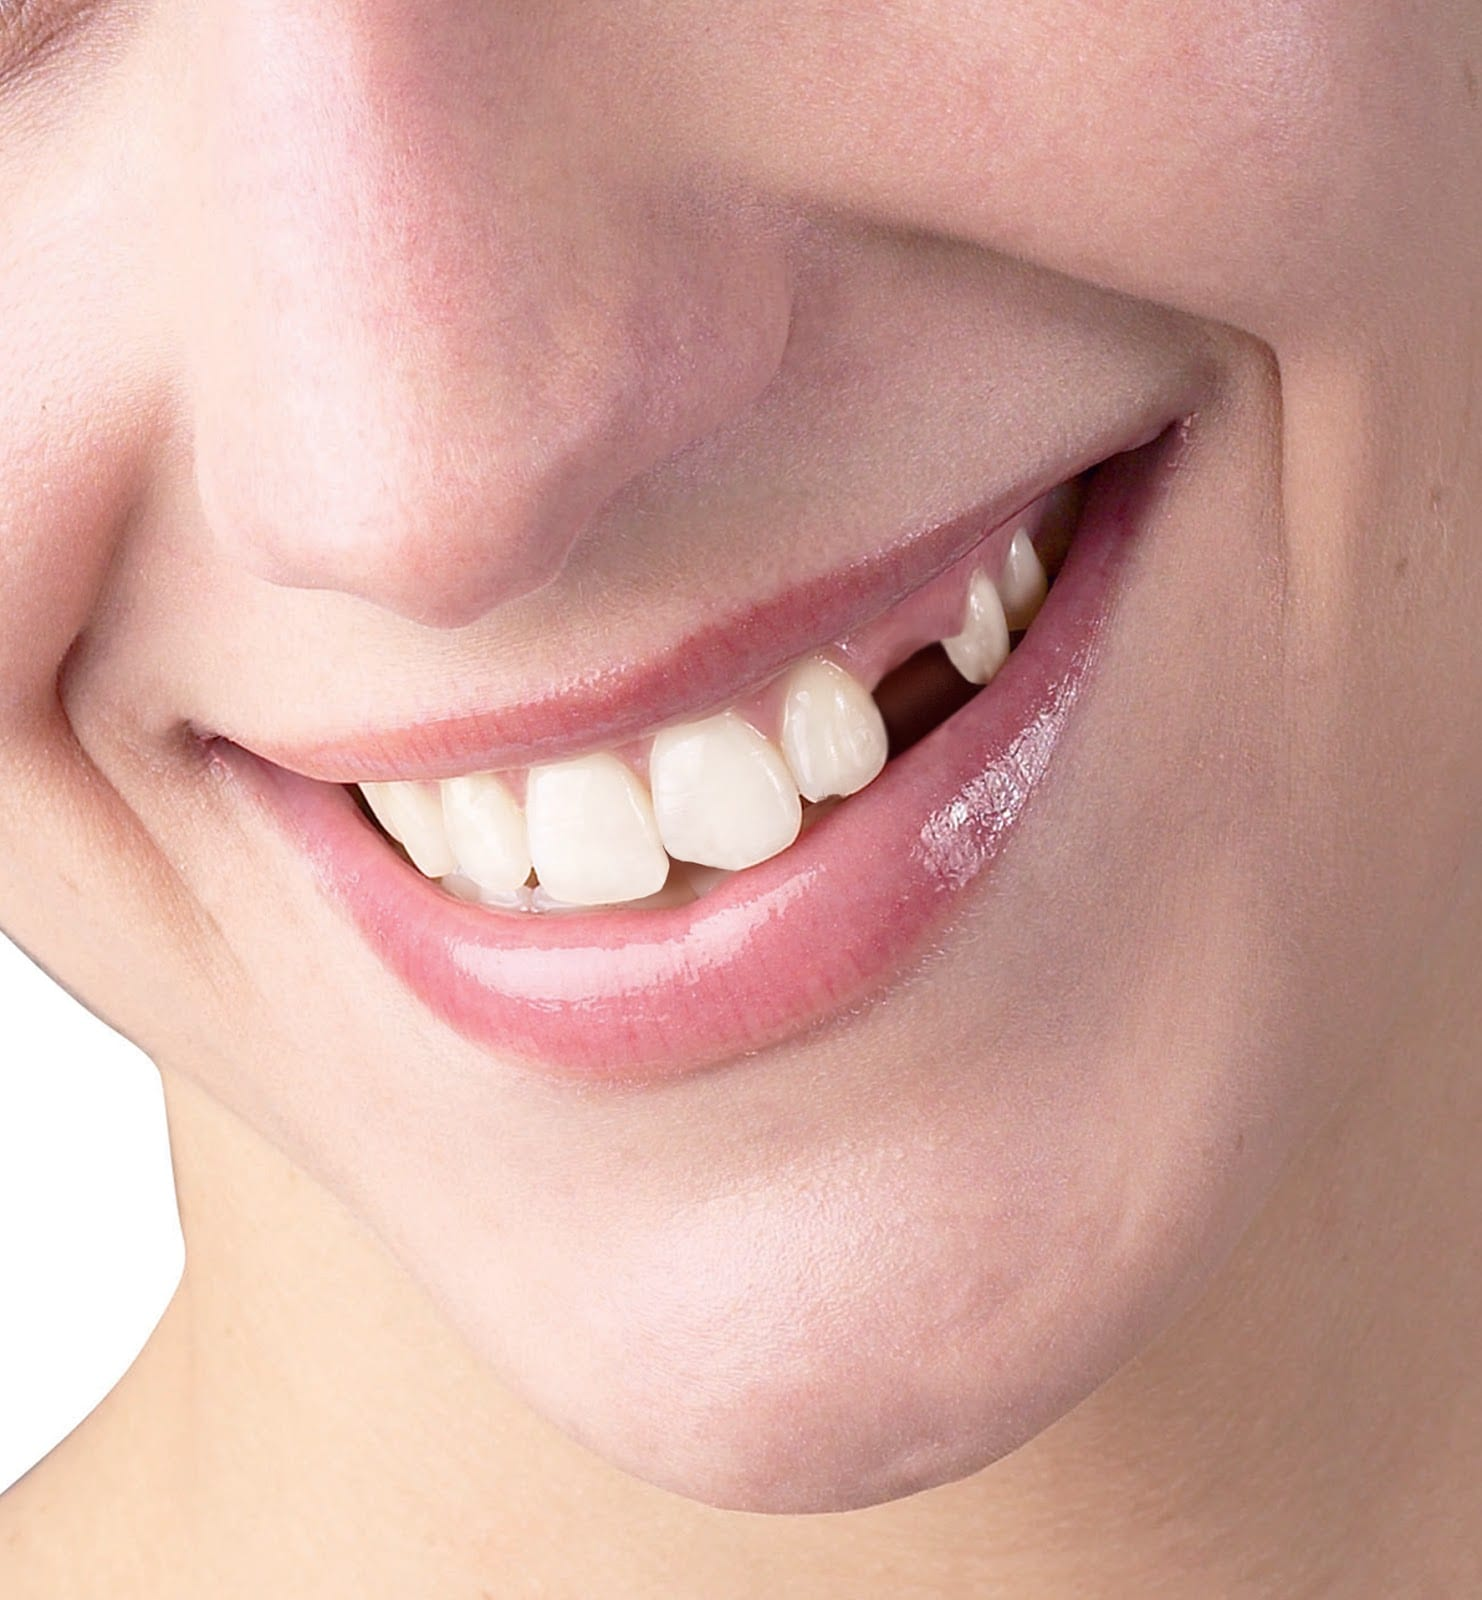 Treatment for missing teeth using PRGF in Liverpool